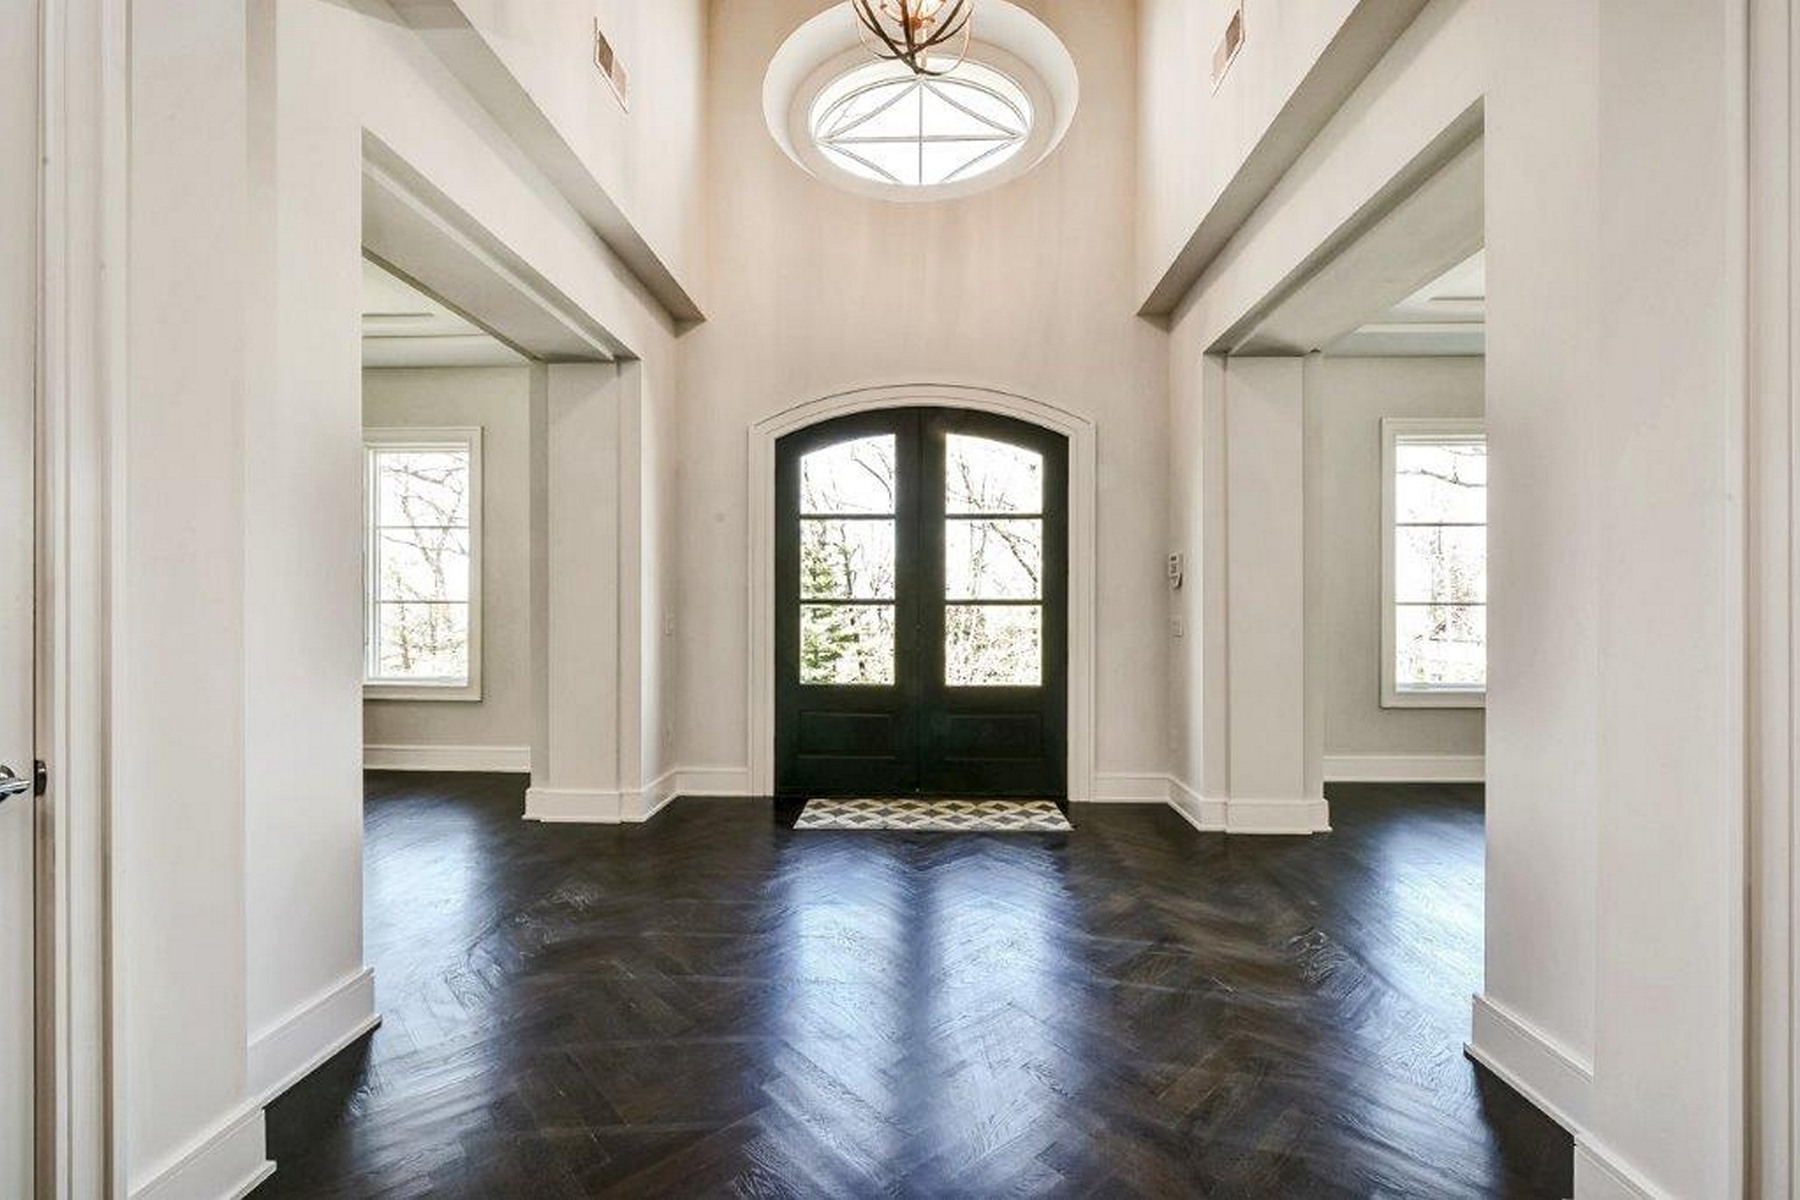 Single Family Home for Sale at Tenafly Masterpiece 14 Dogwood Lane, Tenafly, New Jersey 07670 United States